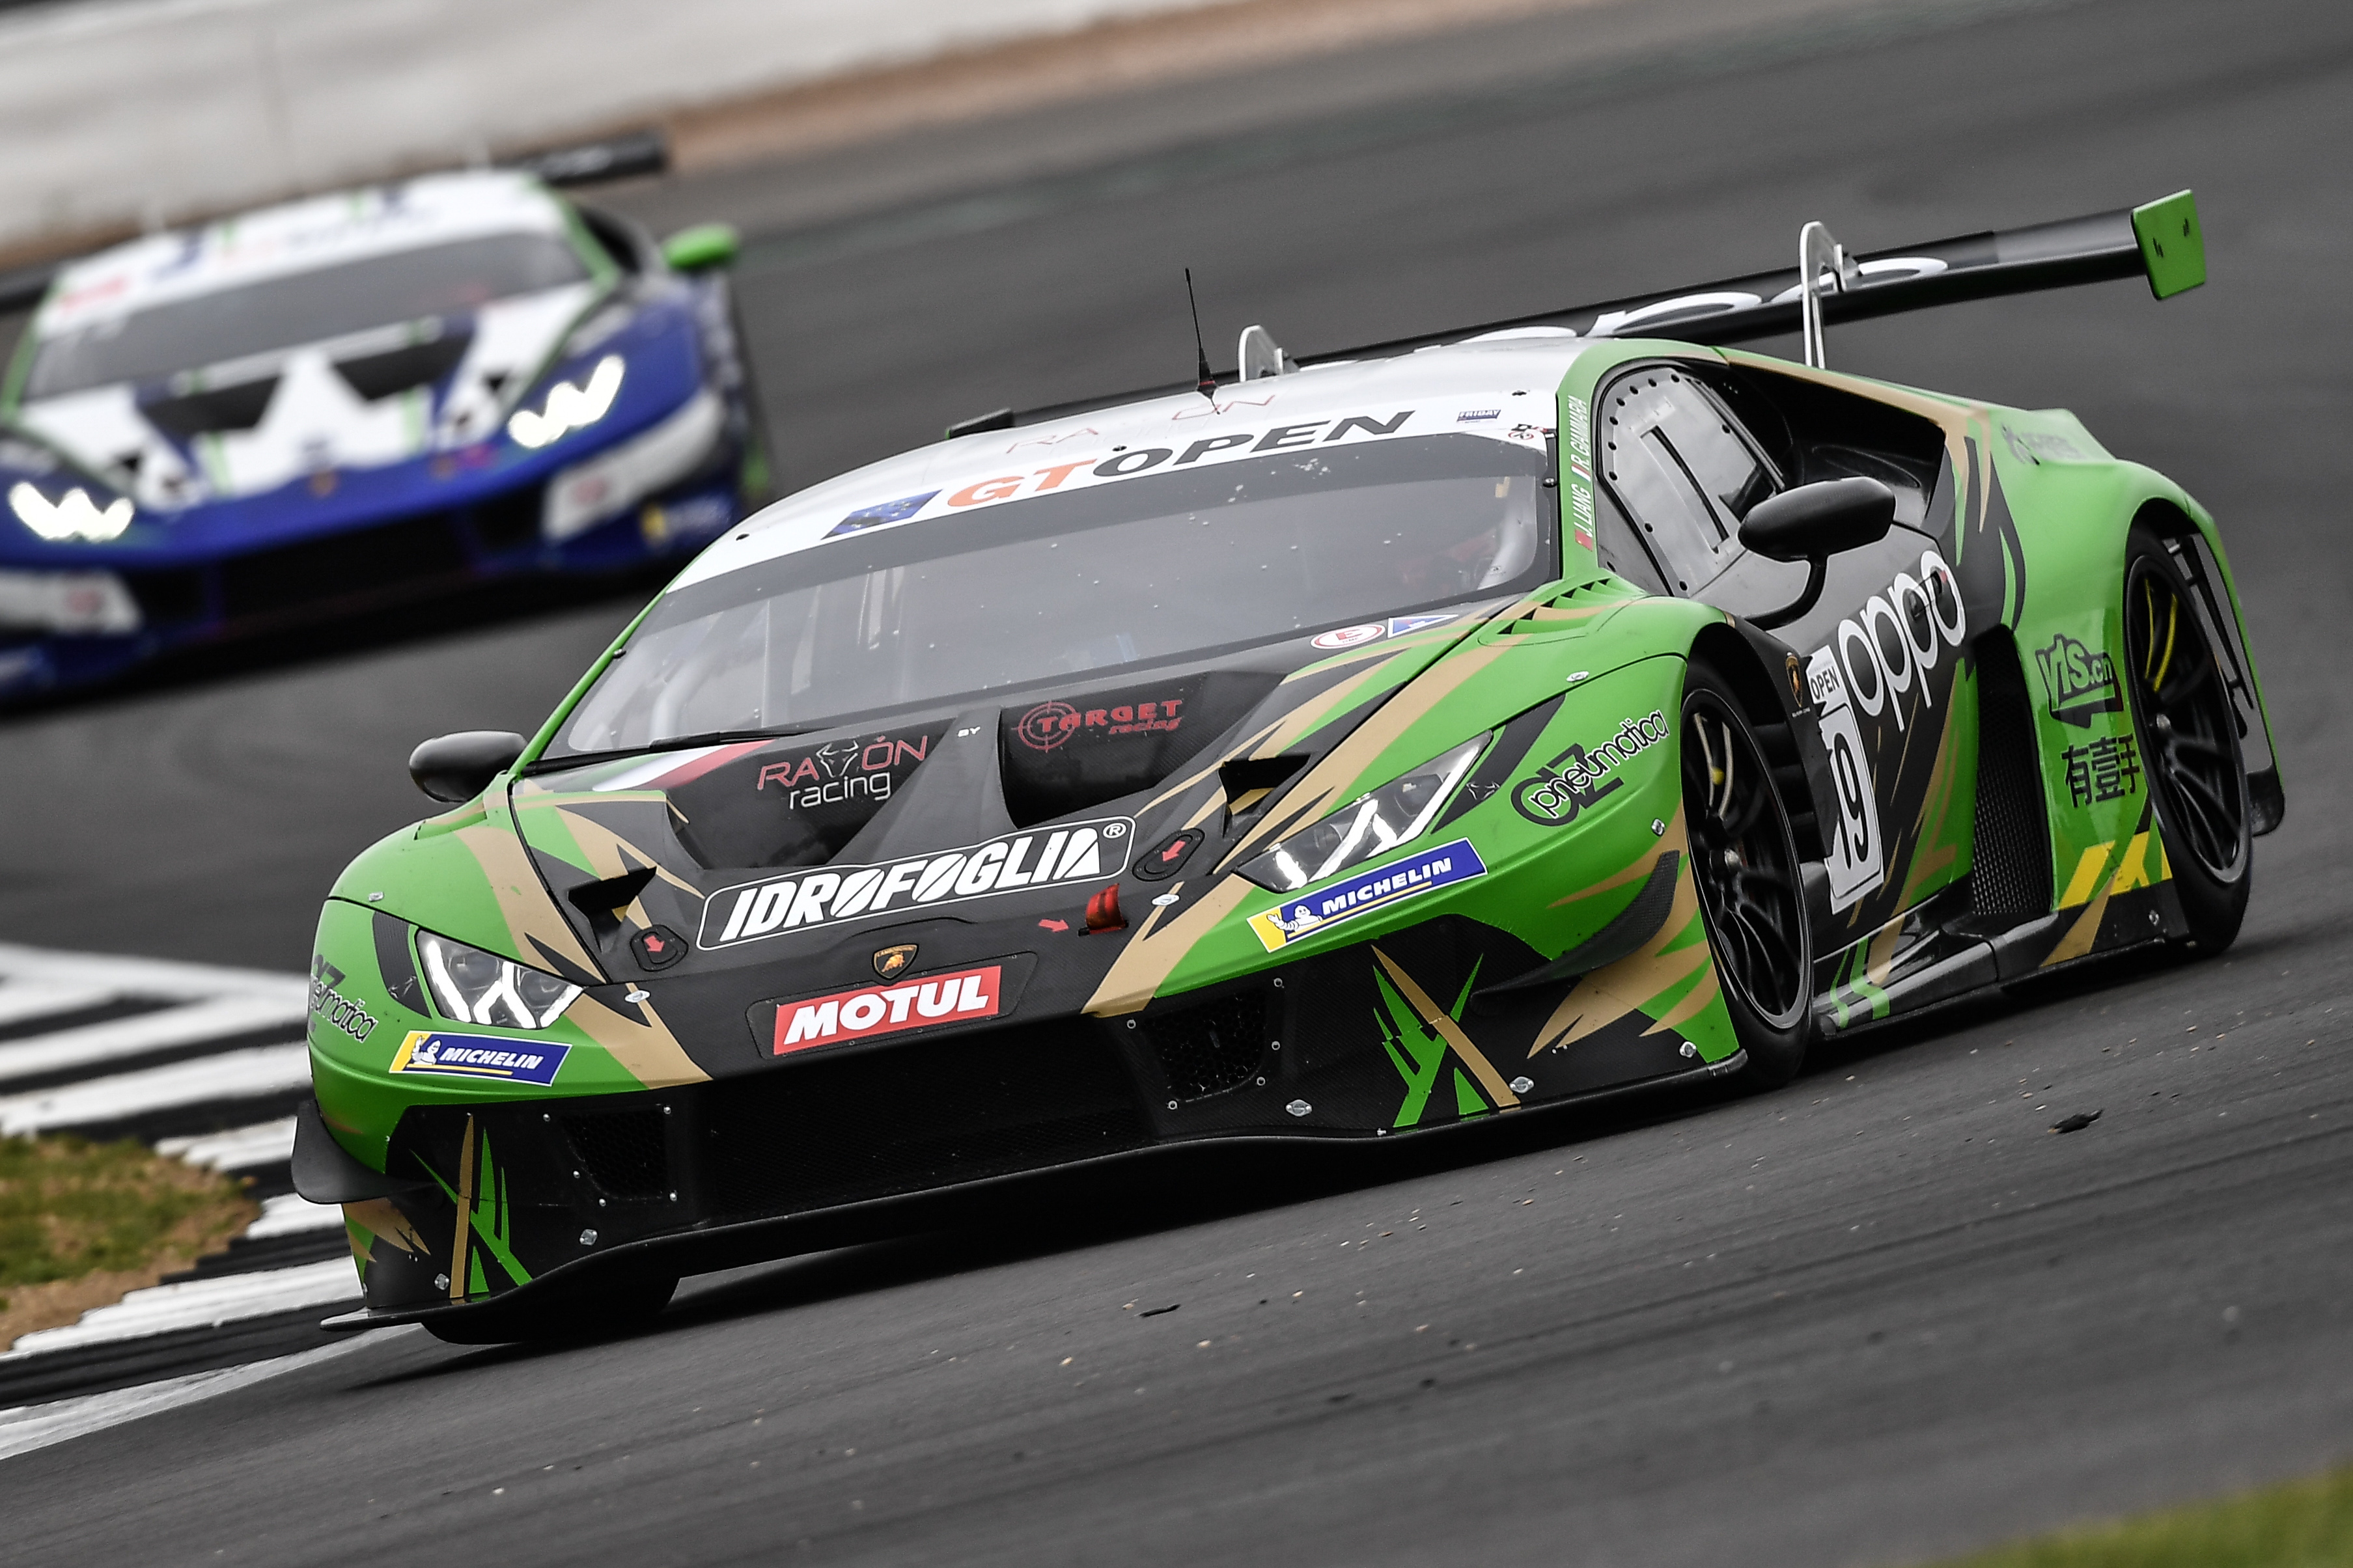 Raton by Target doubles fielding two cars at Montmelò for GT Open